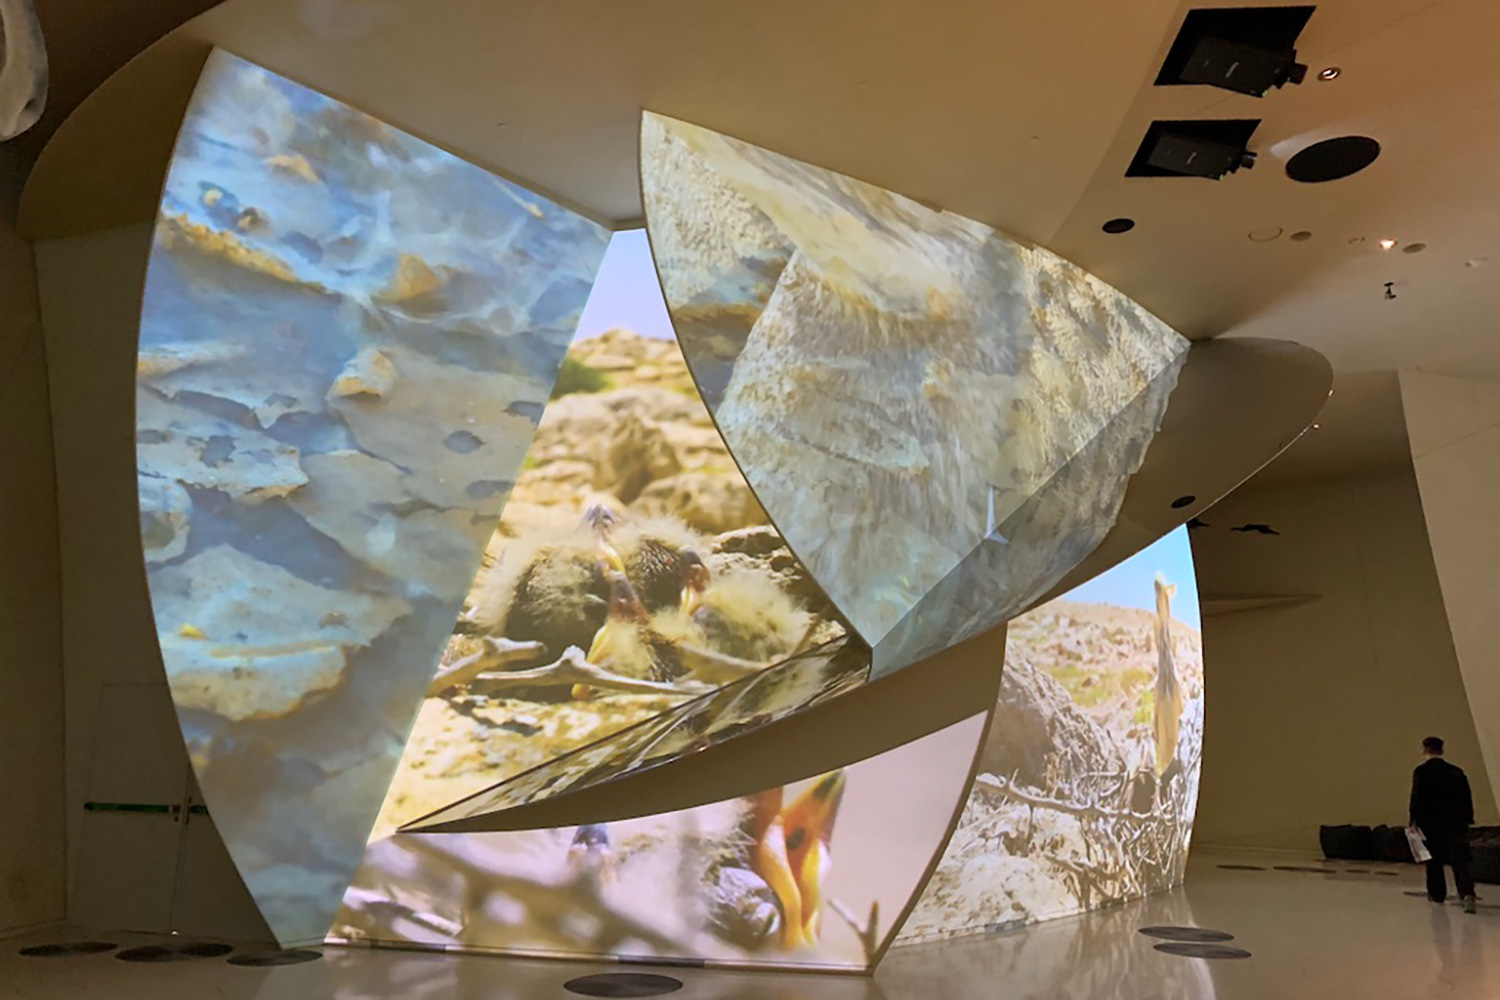 The National Museum of Qatar. WSDG was contracted to create a 3-D acoustic model of the space and make recommendations regarding appropriate speaker usage and placement. Hidden treatment in shapes.